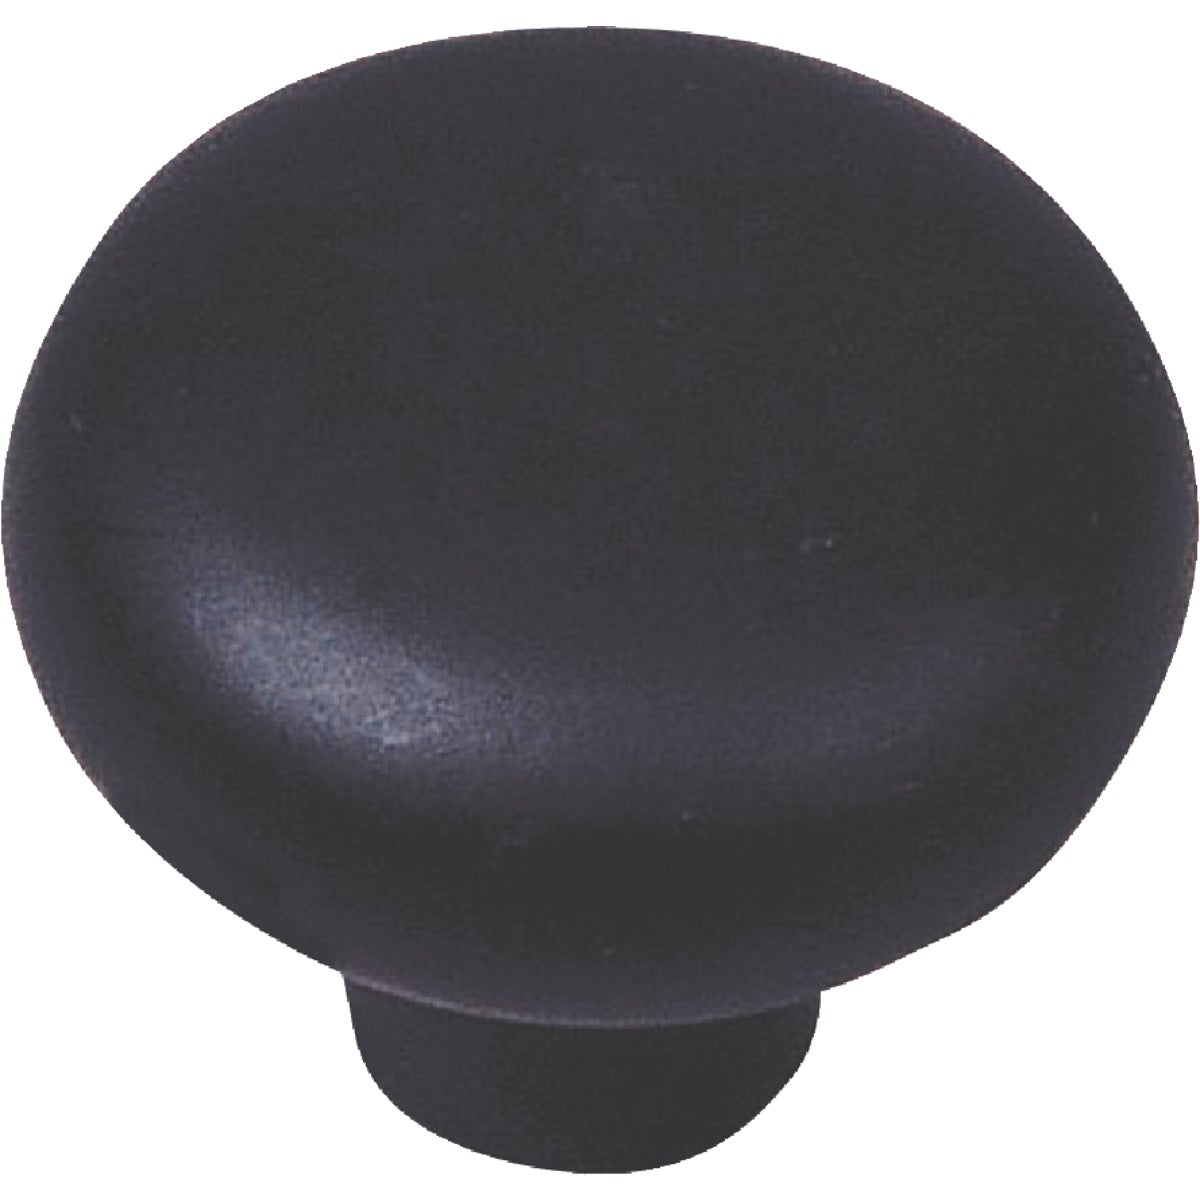 1-3/8 BLK CERAMIC KNOB - 03915 by Laurey Co